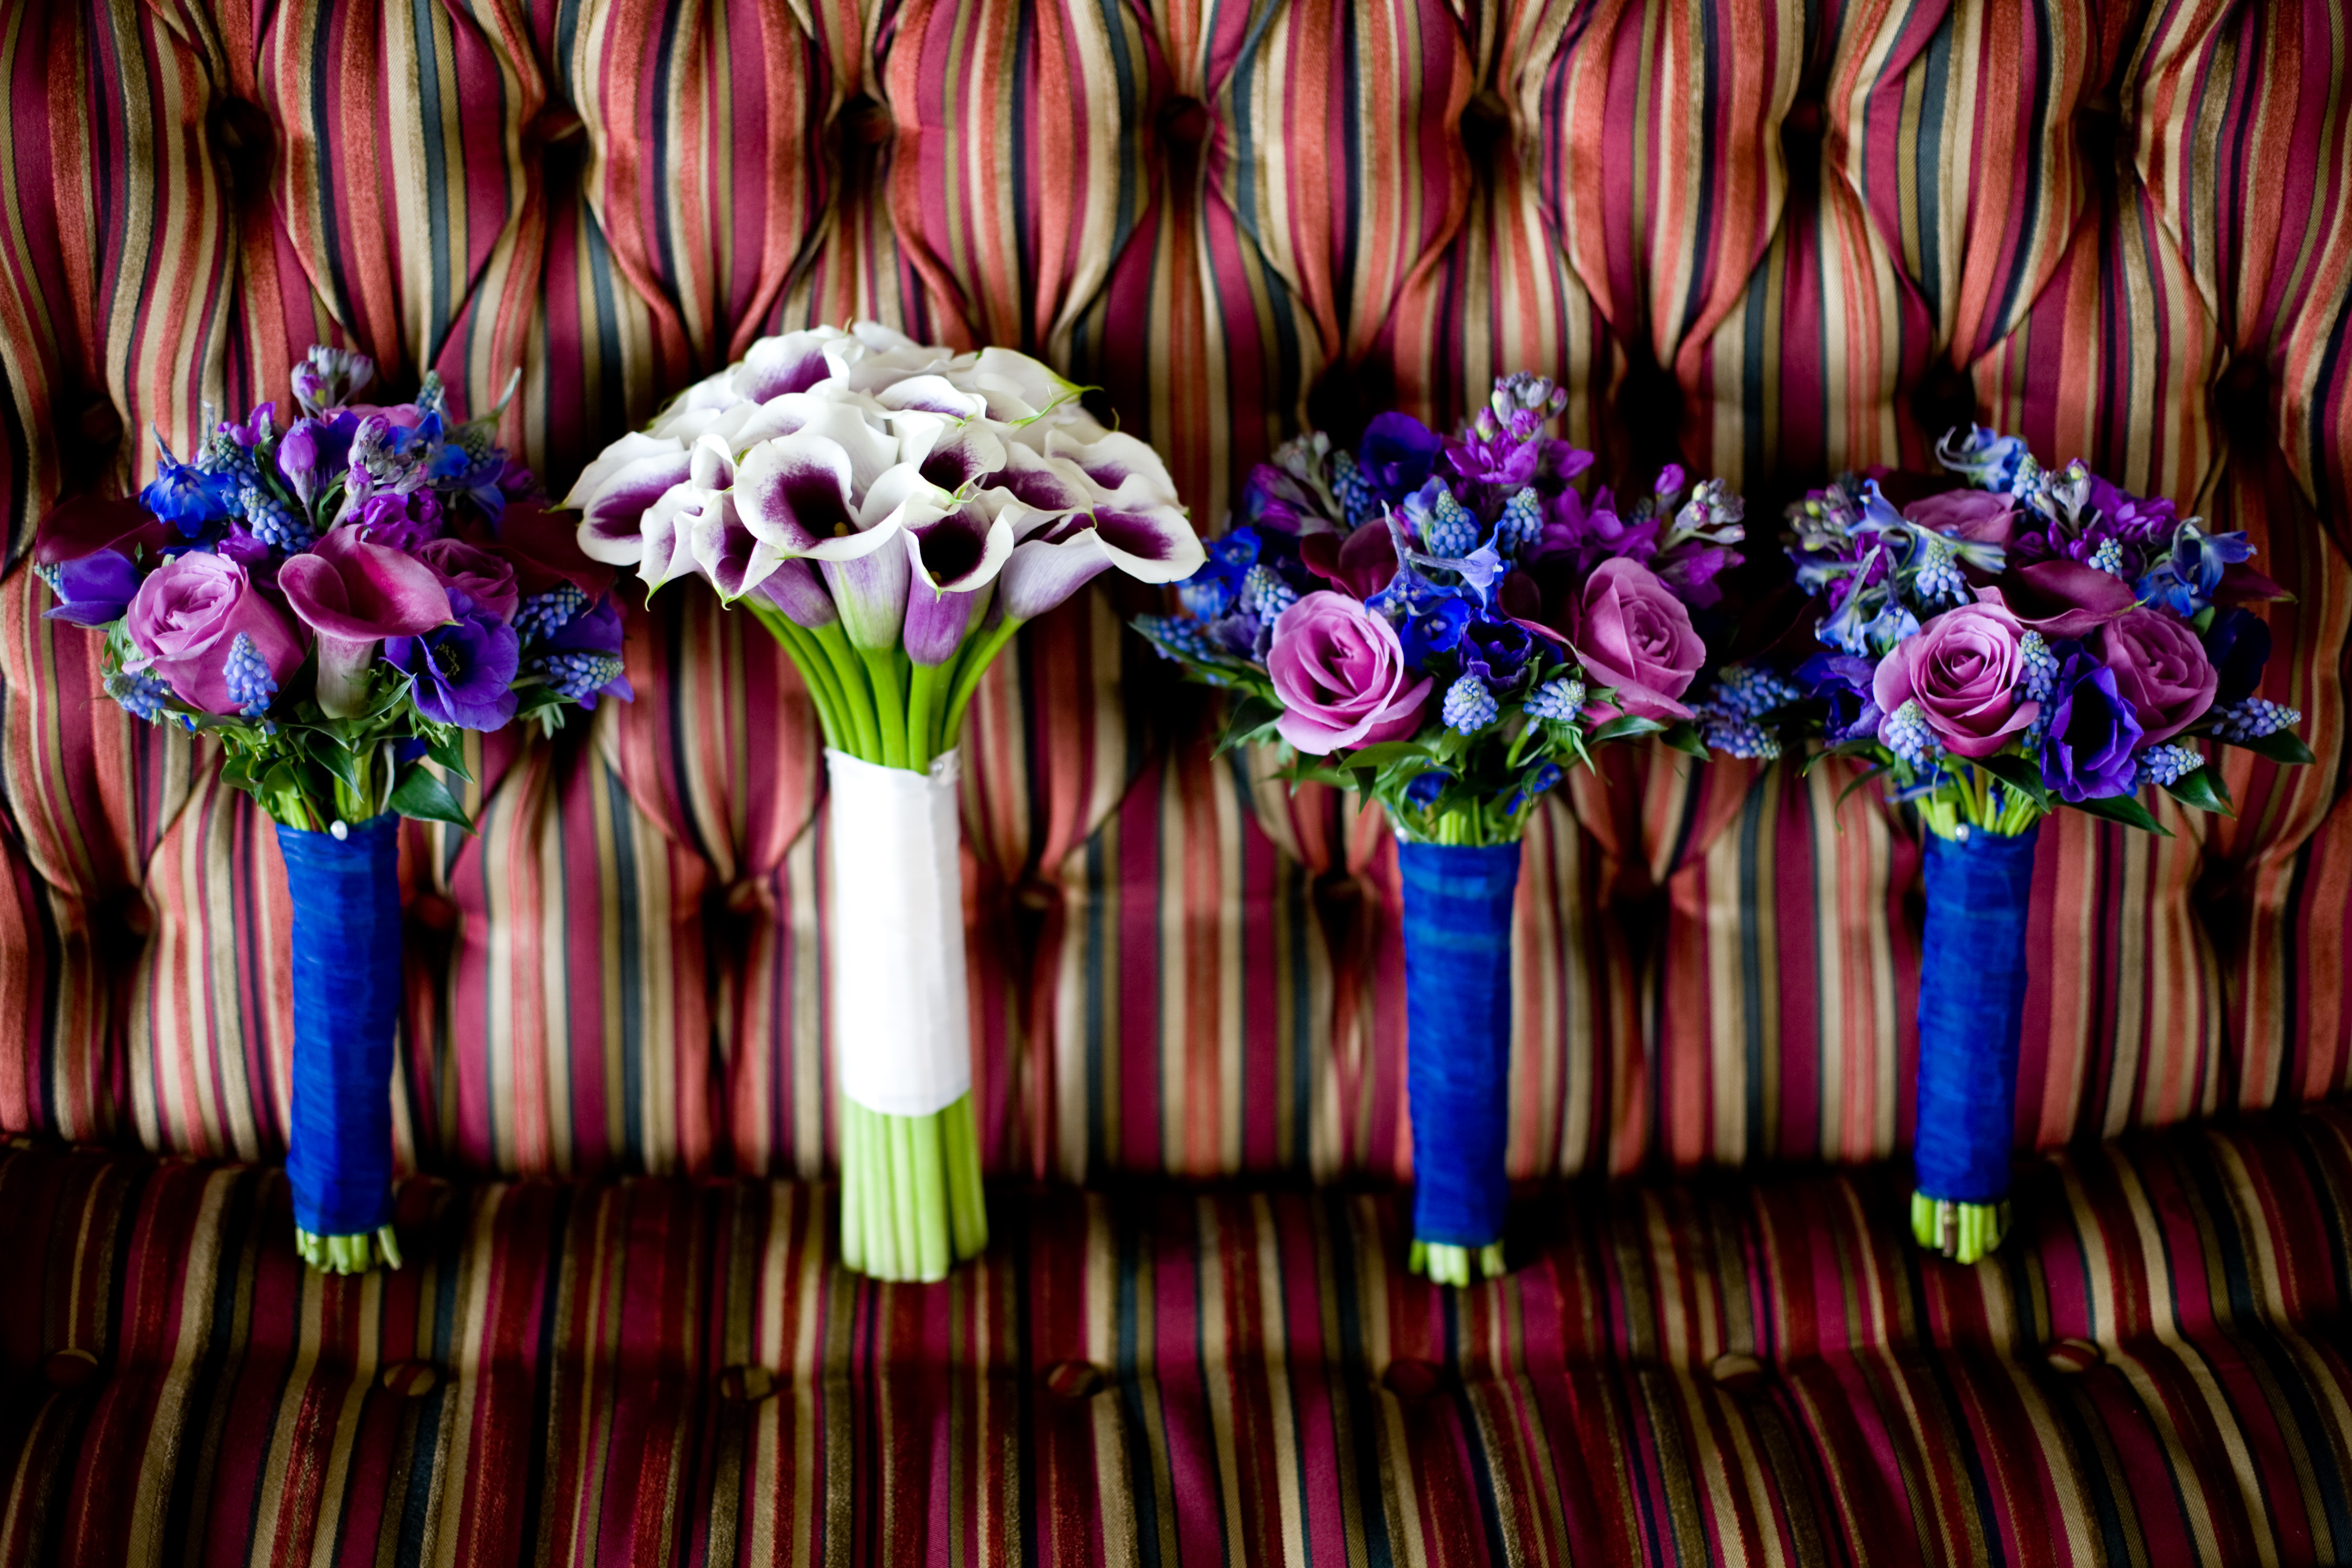 Flowers & Decor, pink, purple, blue, Flowers, Monica z photography